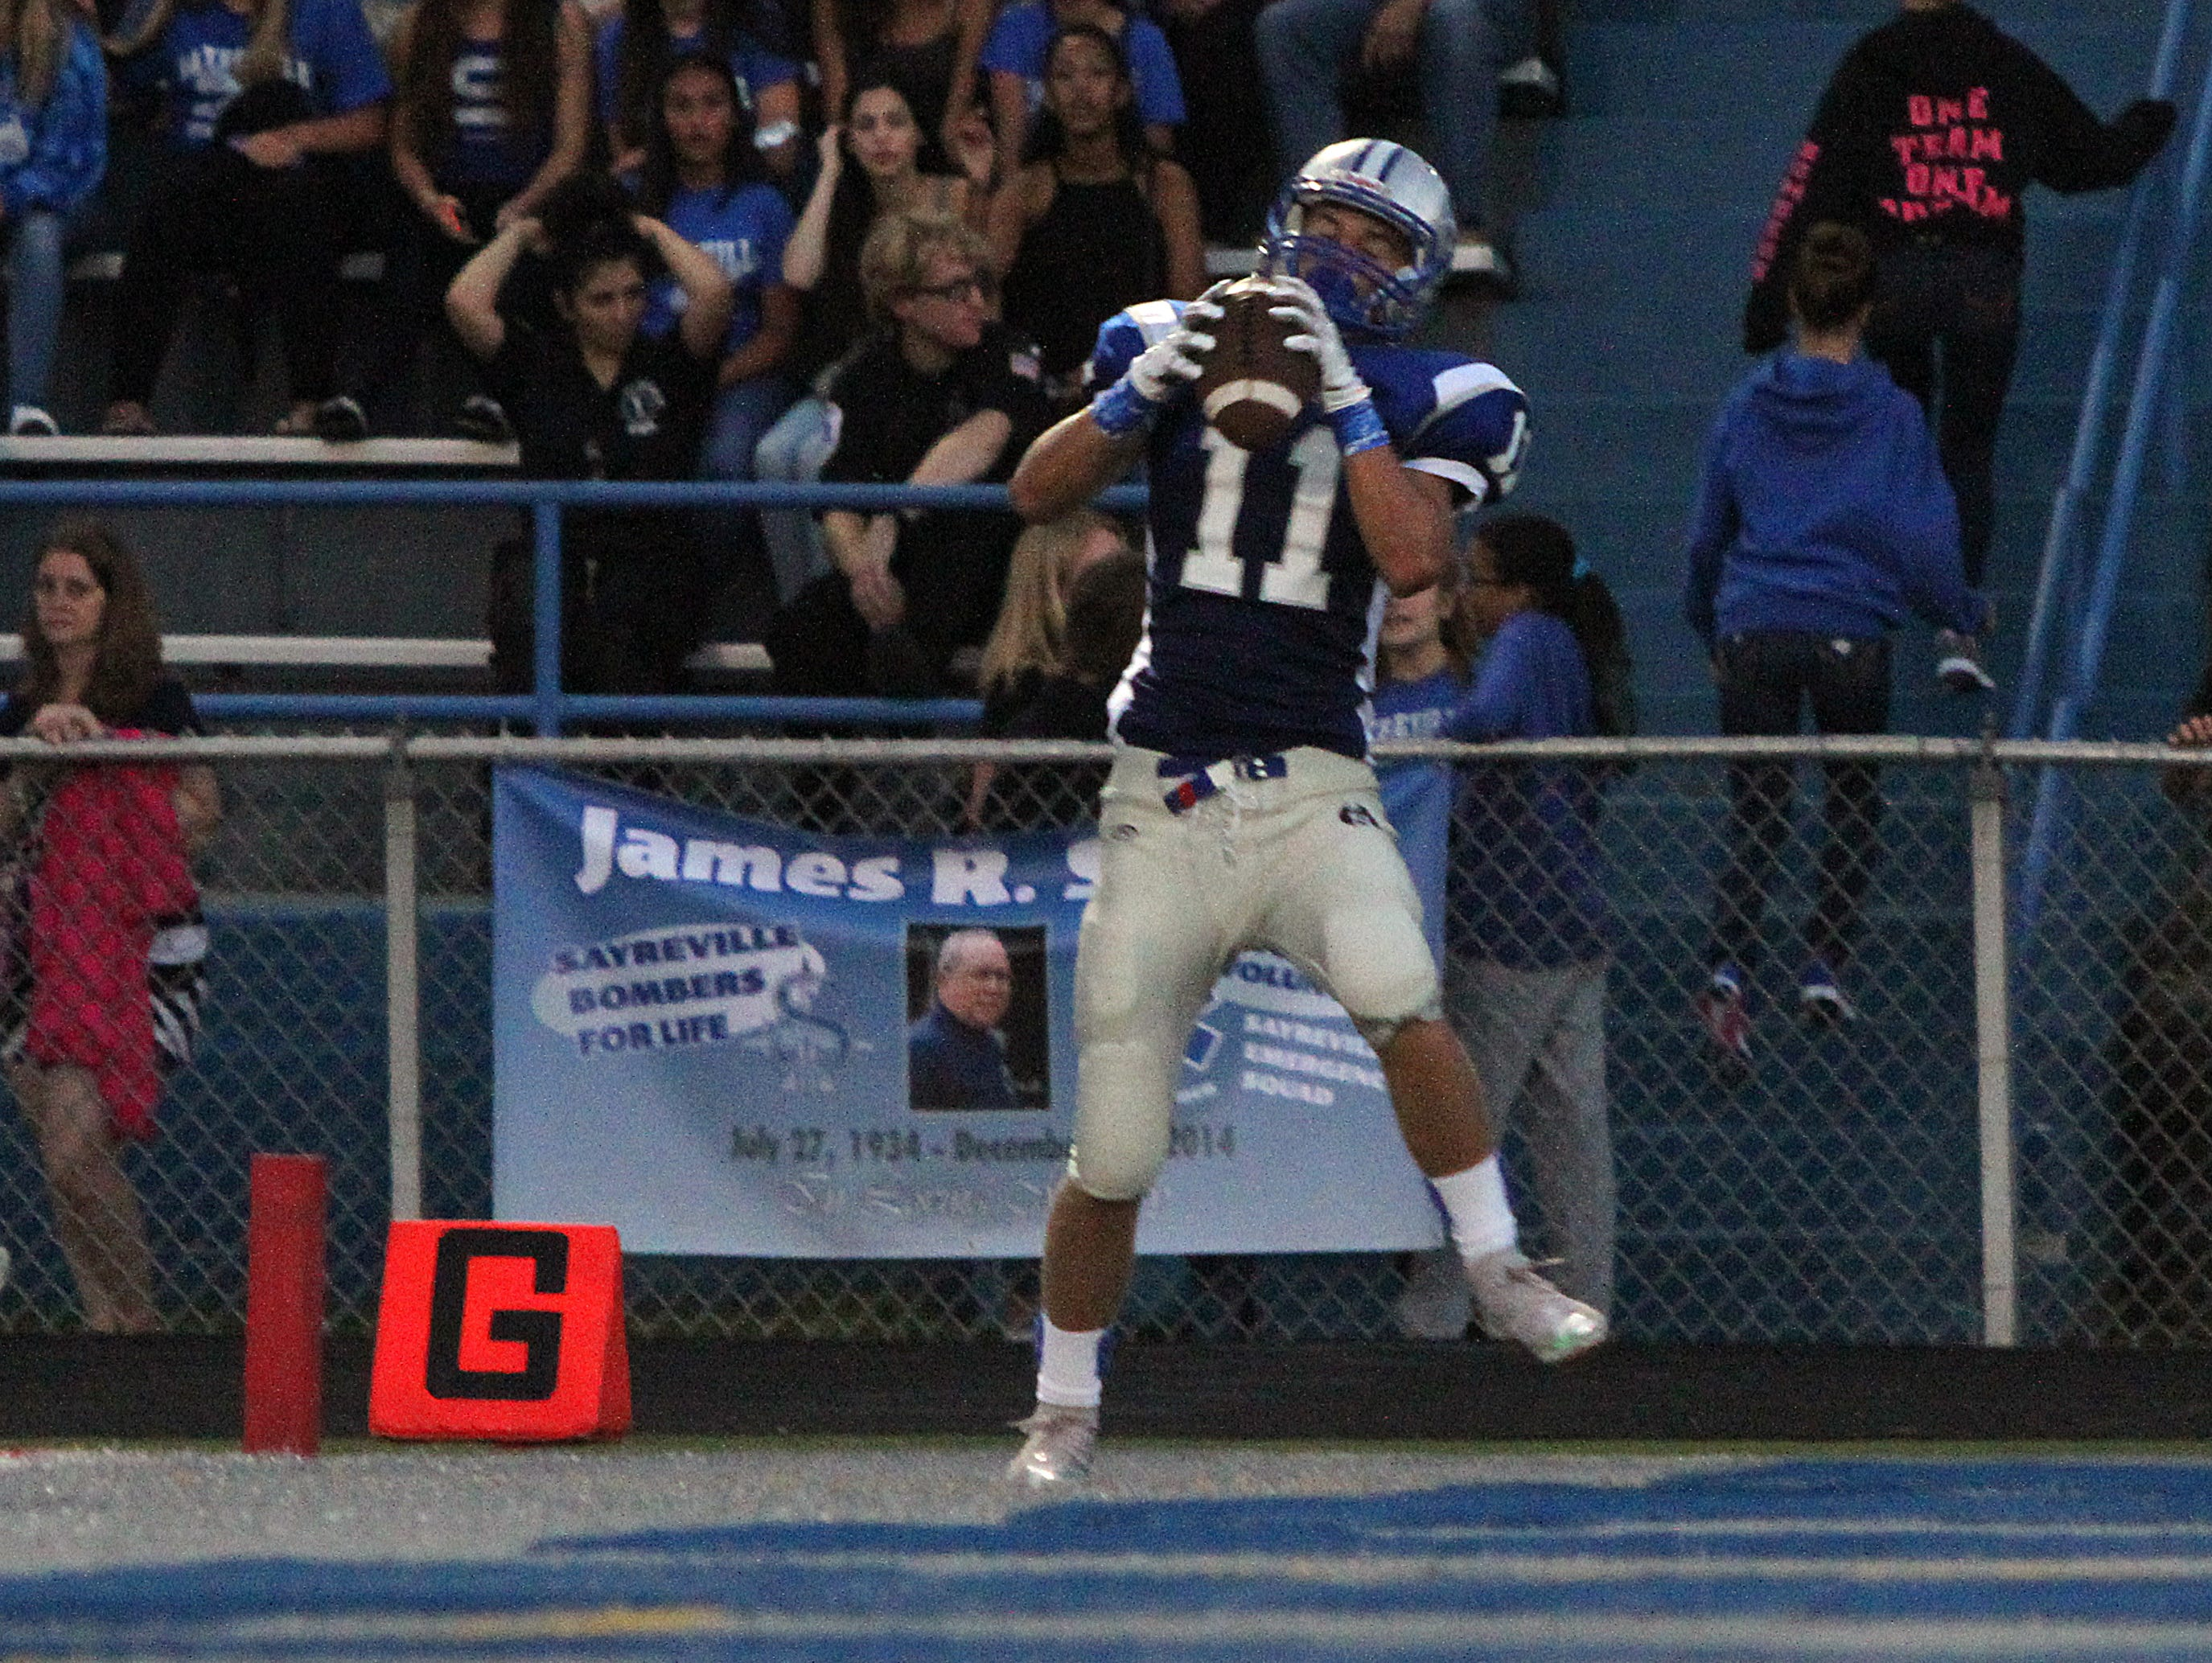 The scandal-ridden Sayreville High School football team returns to action for the first time since school officials cancelled the remainder of the 2014 season last October with their 2015 opener against J.P. Stevens on Friday September 11,2015. Here Sayreville's # 11 Andrew Willie catches a first quarter touchdown pass from Sayreville quarterback # 2 (not seen)-Jayson McMild.